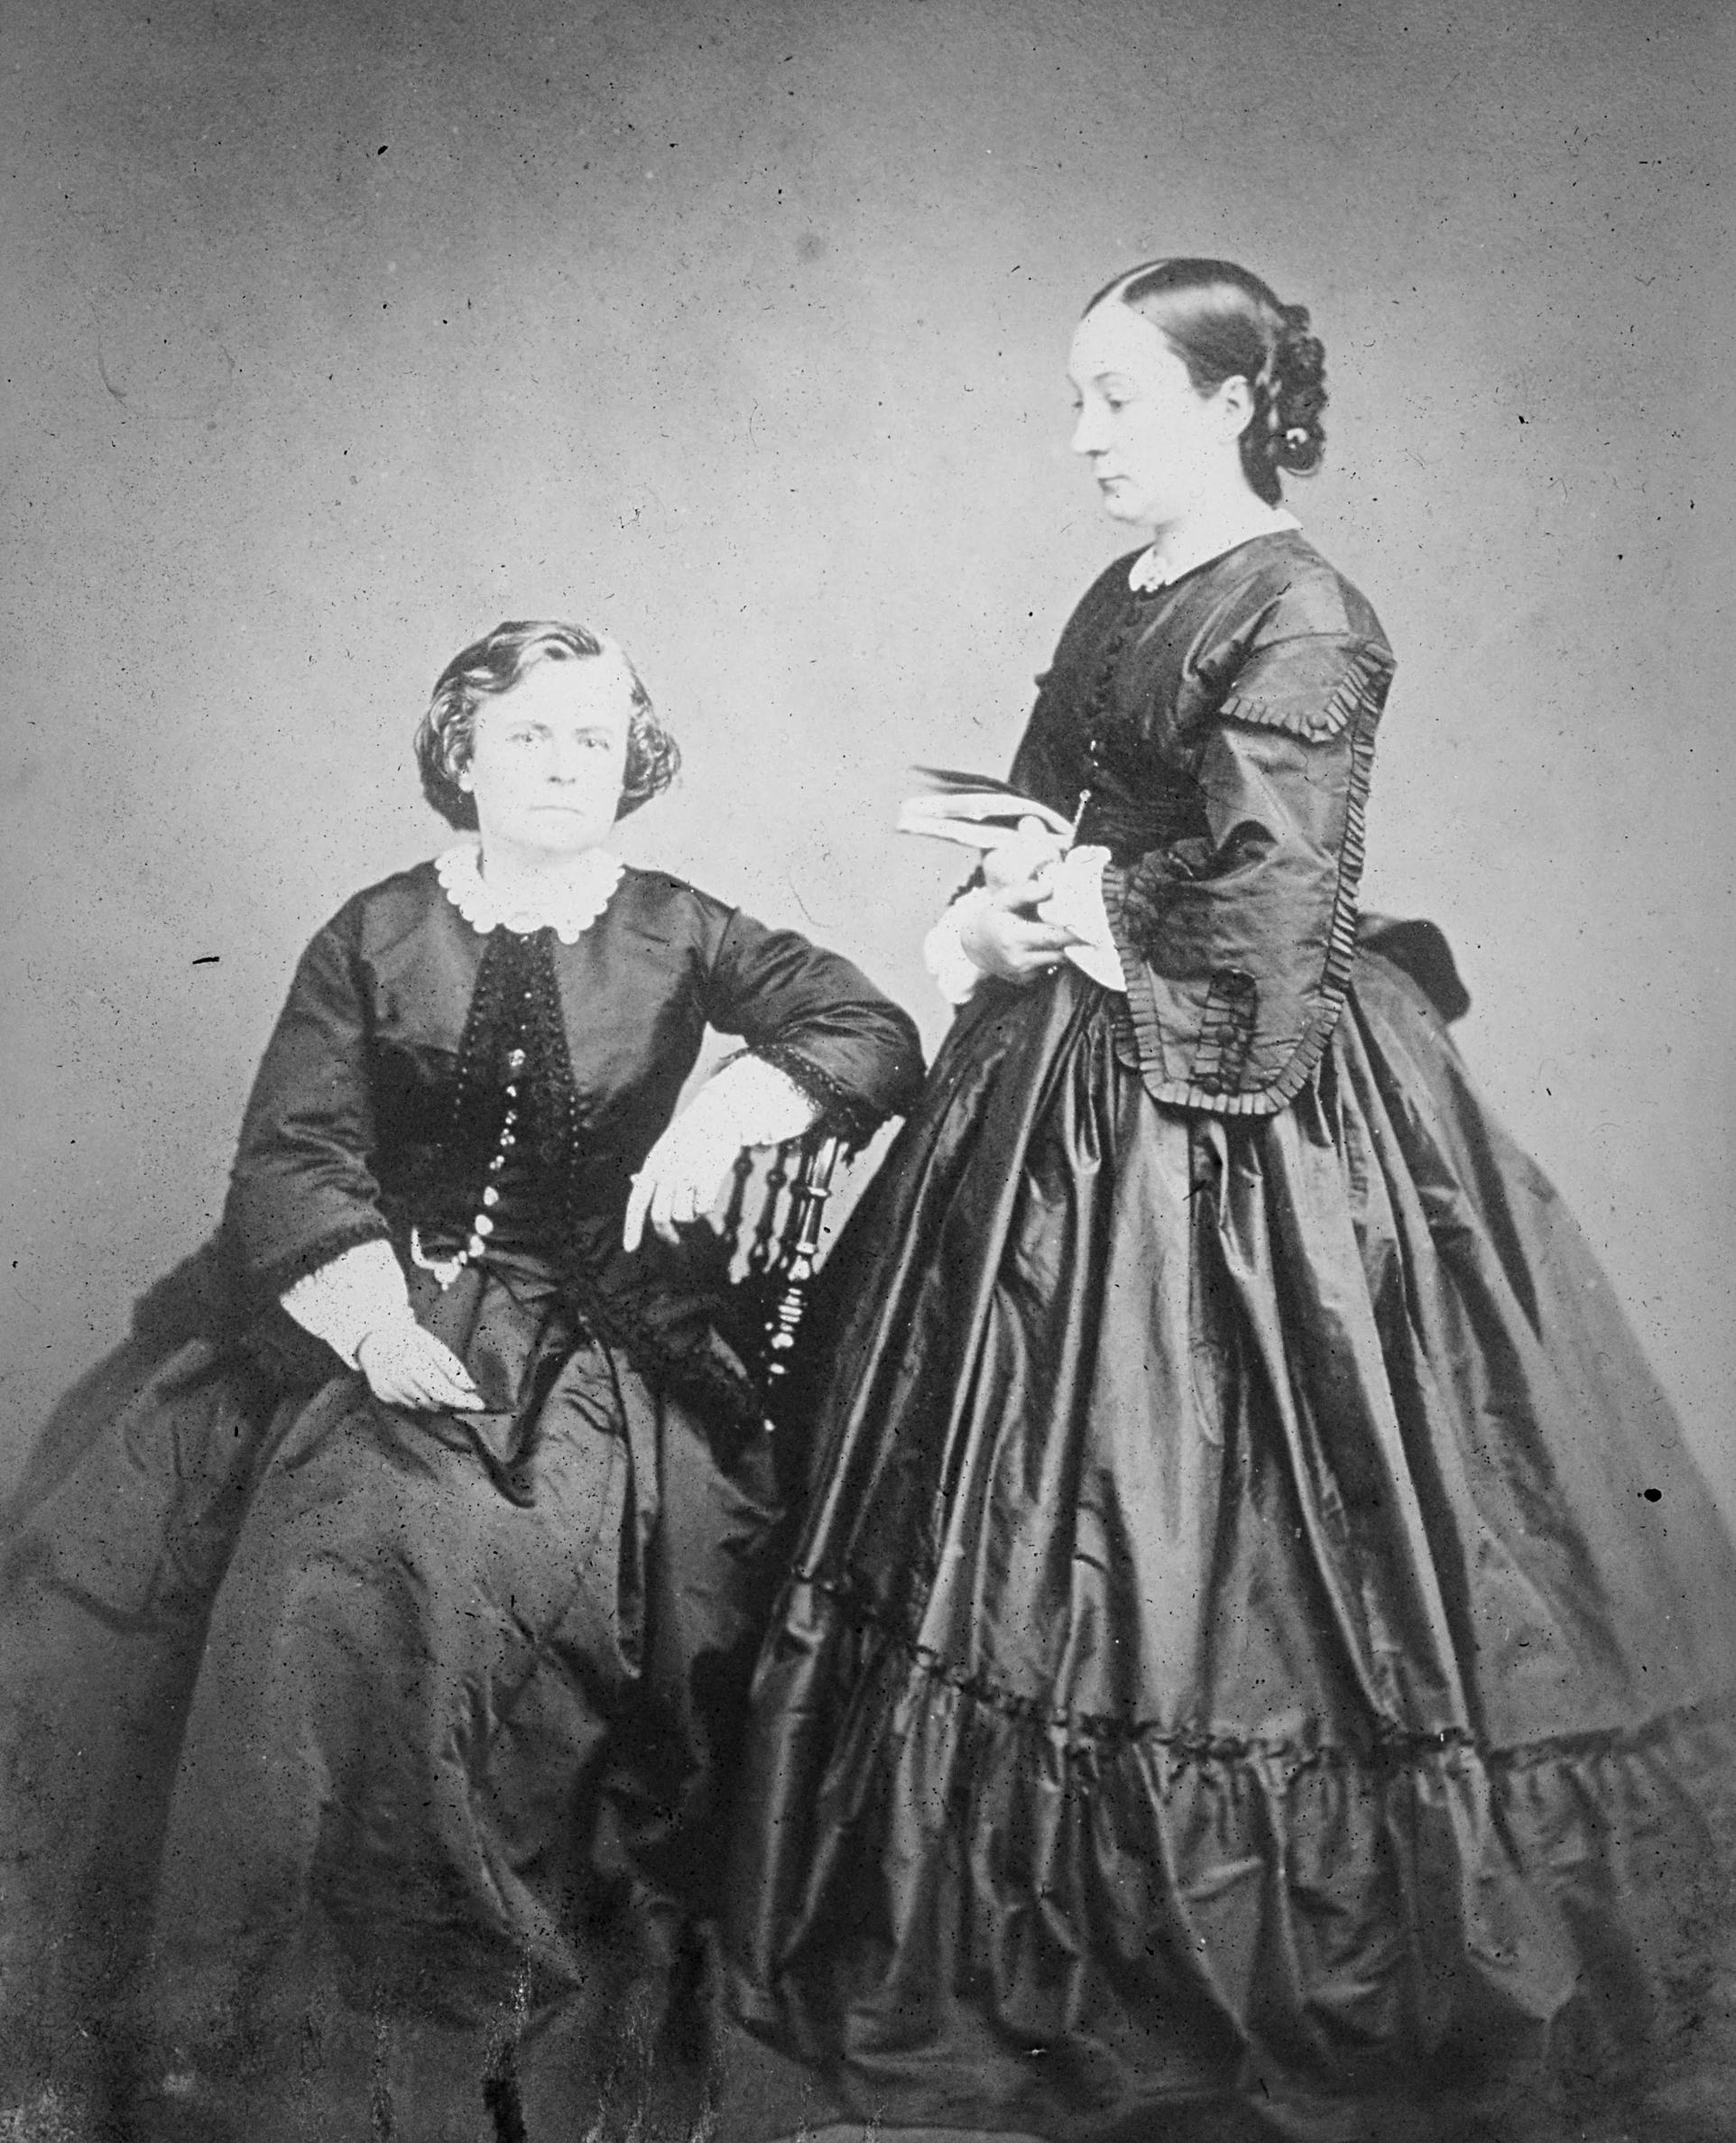 Rosa and Nathalie in black and white and large dresses